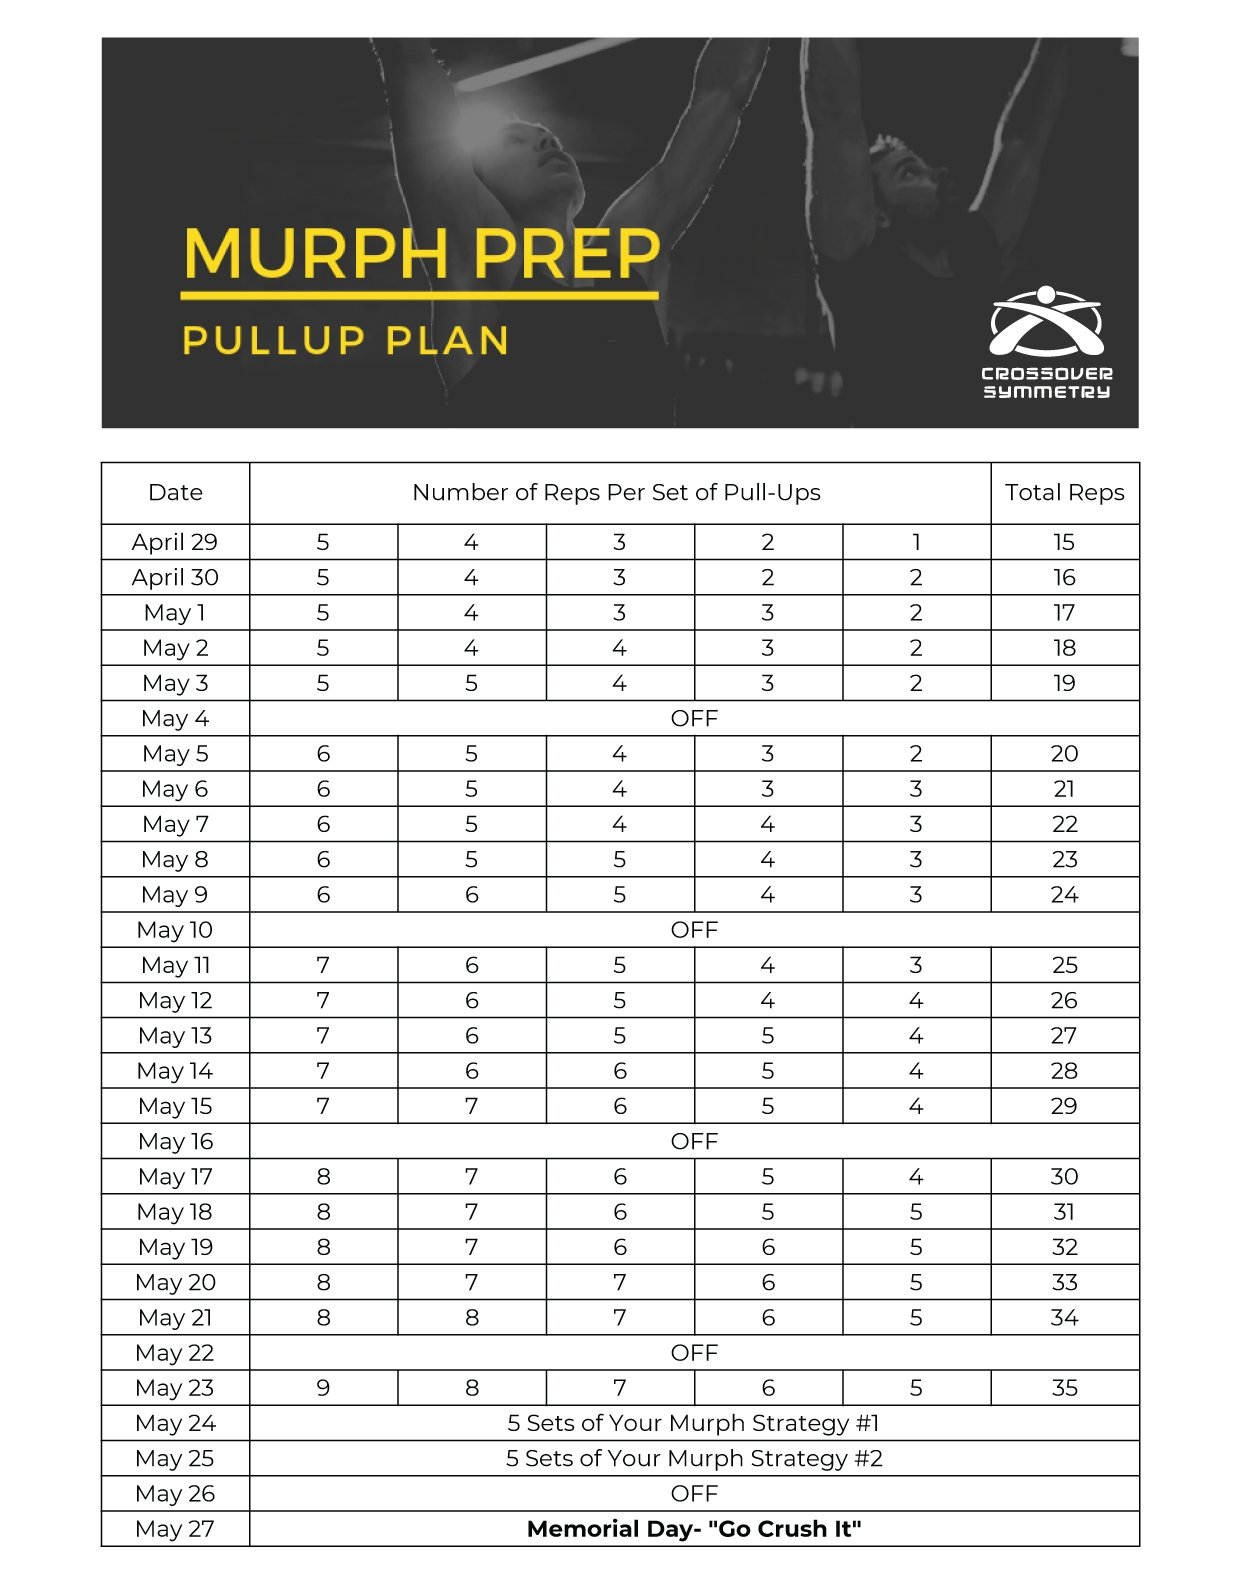 Become a Pushup-Pullup Machine With the Murph Prep Challenge